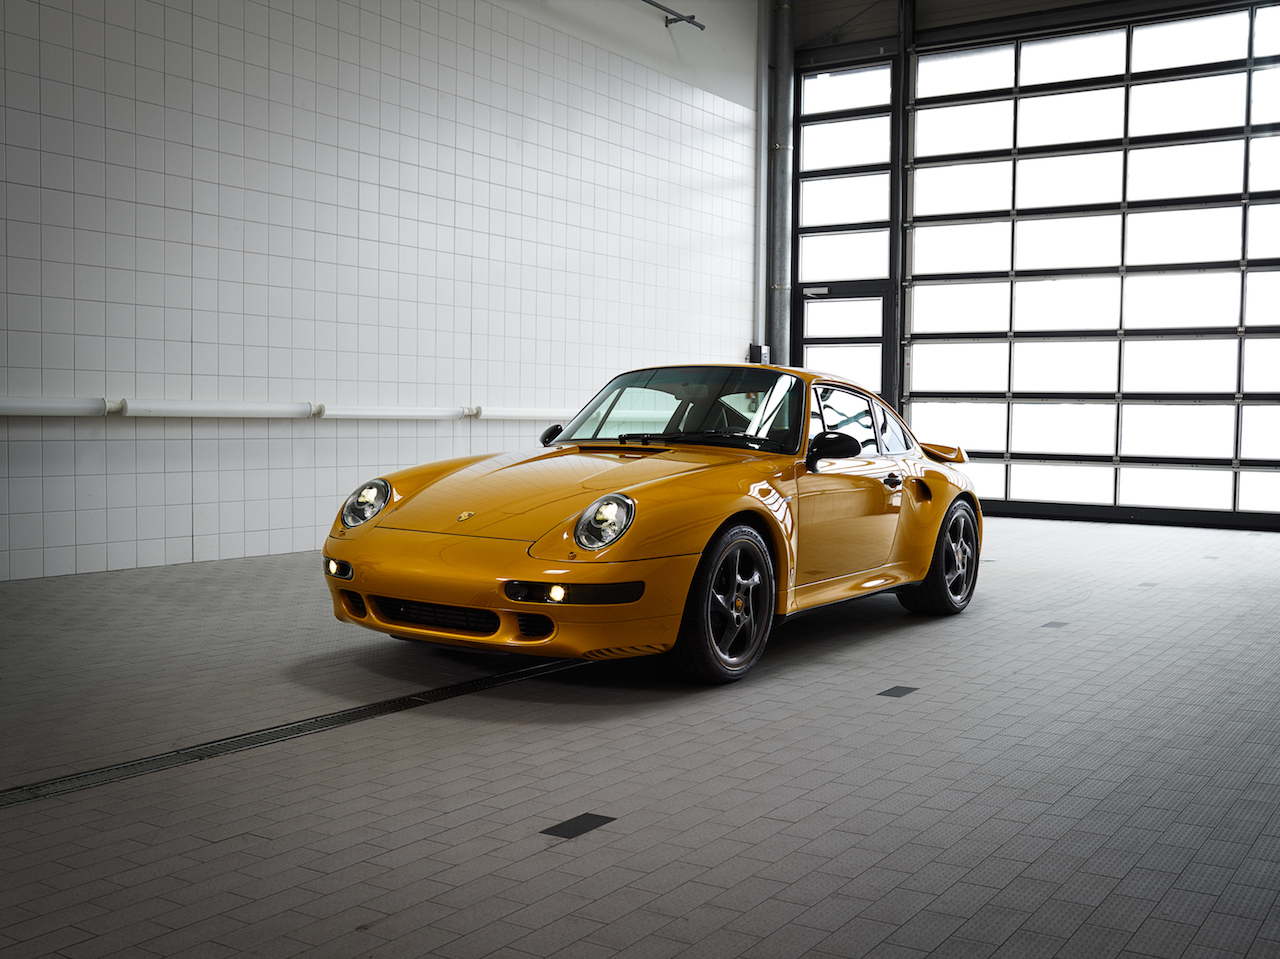 porsche-911-993-turbo-project-gold-1